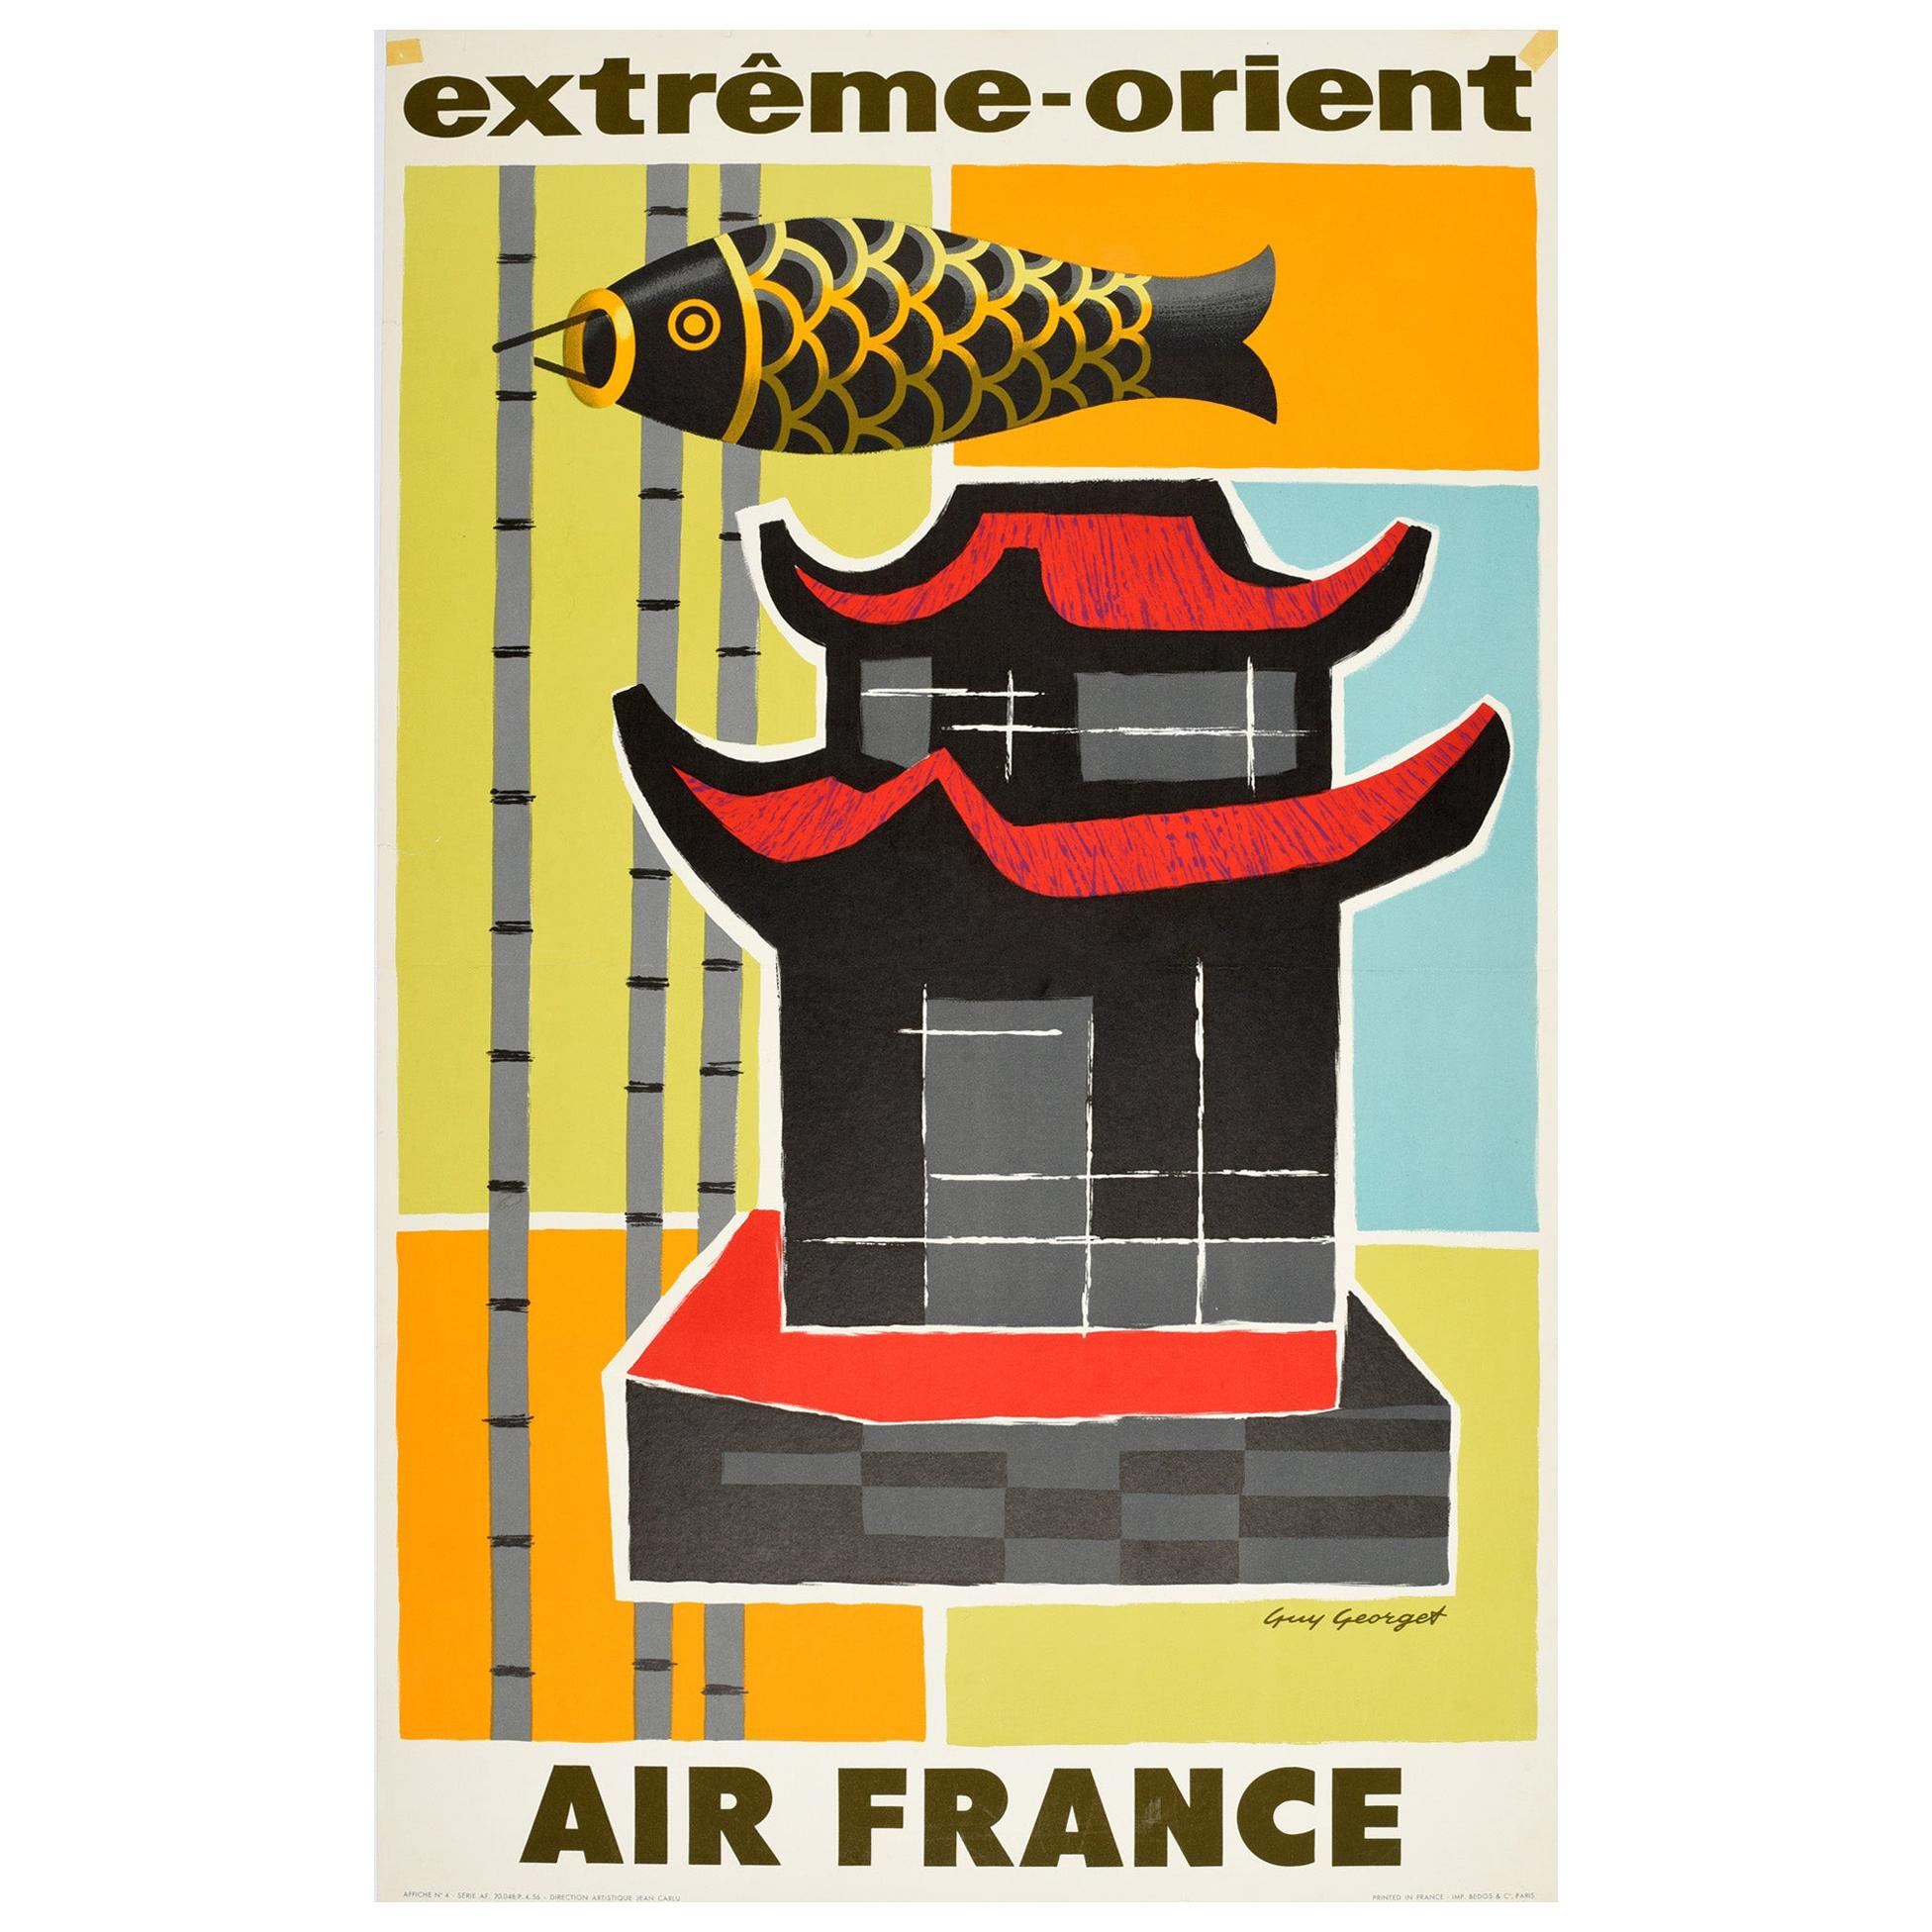 Original Vintage Poster Extreme Orient Air France Far East Travel Midcentury